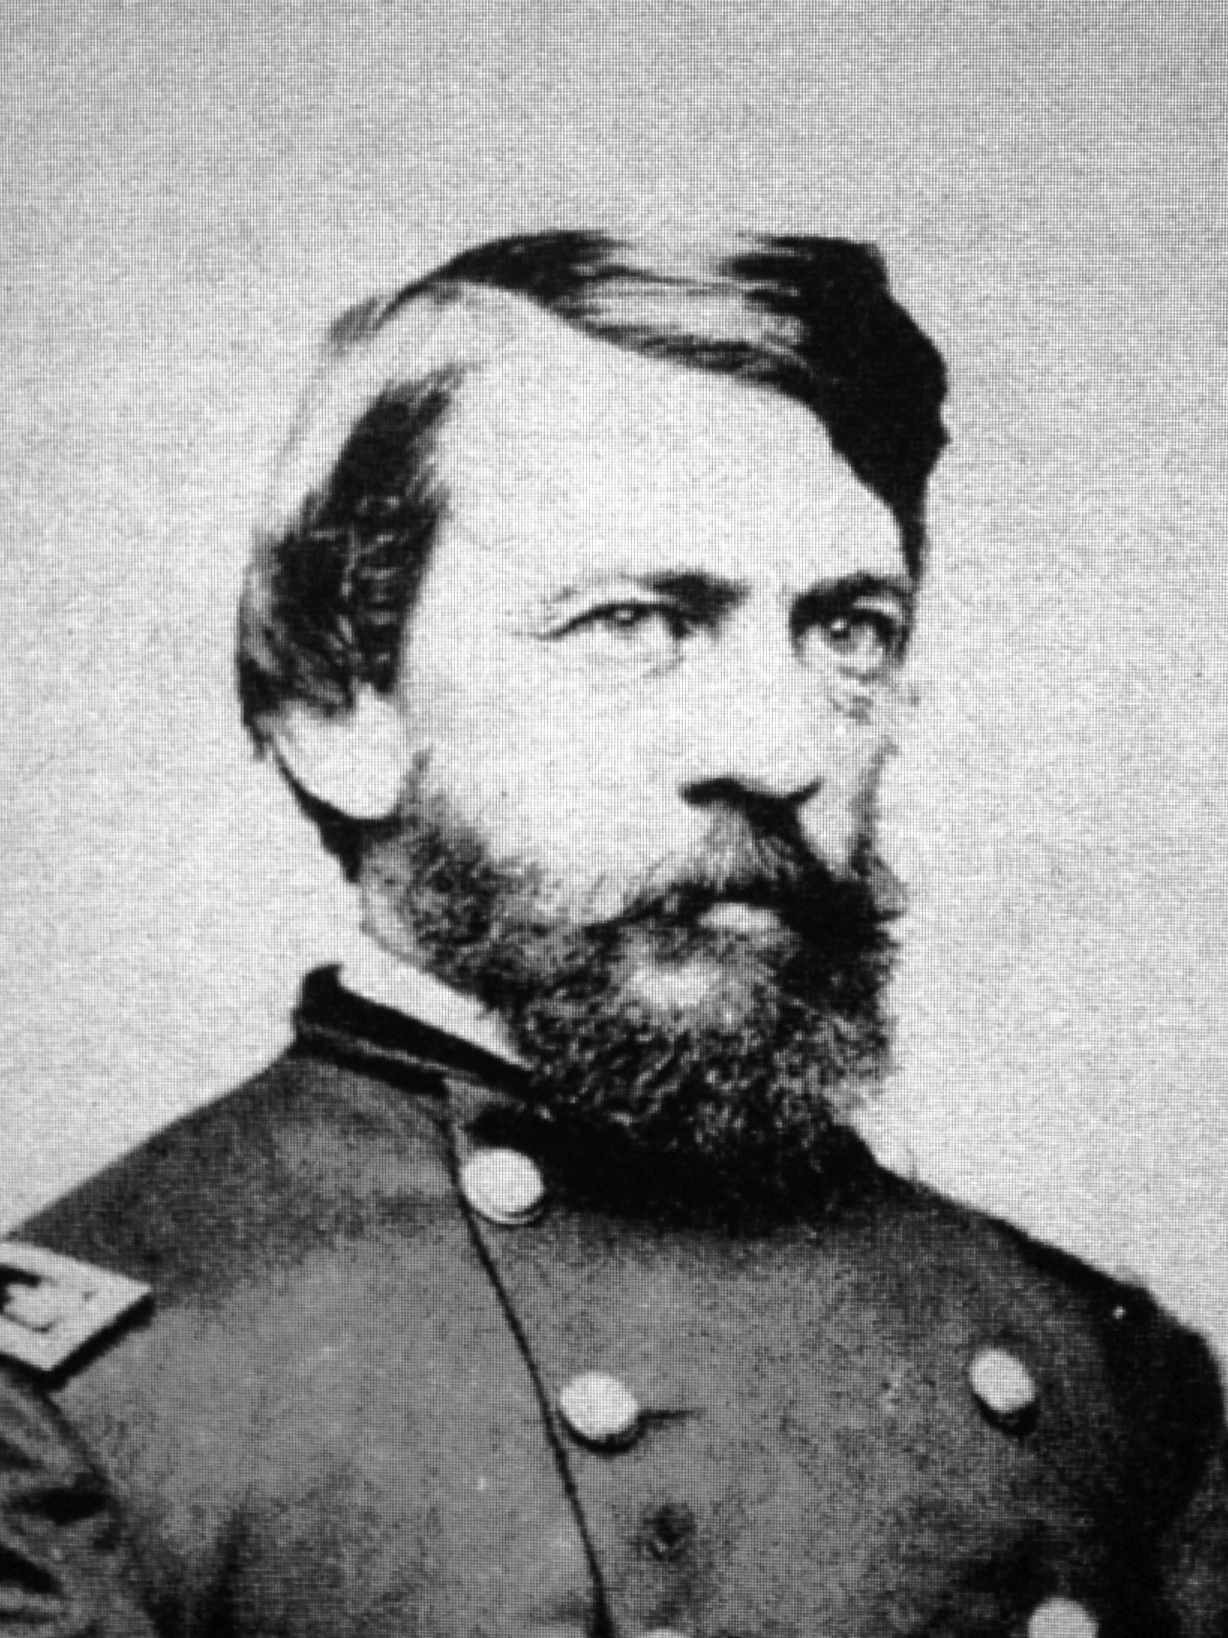 Civil War Surgeon Set The Standard For Battlefield Medicine